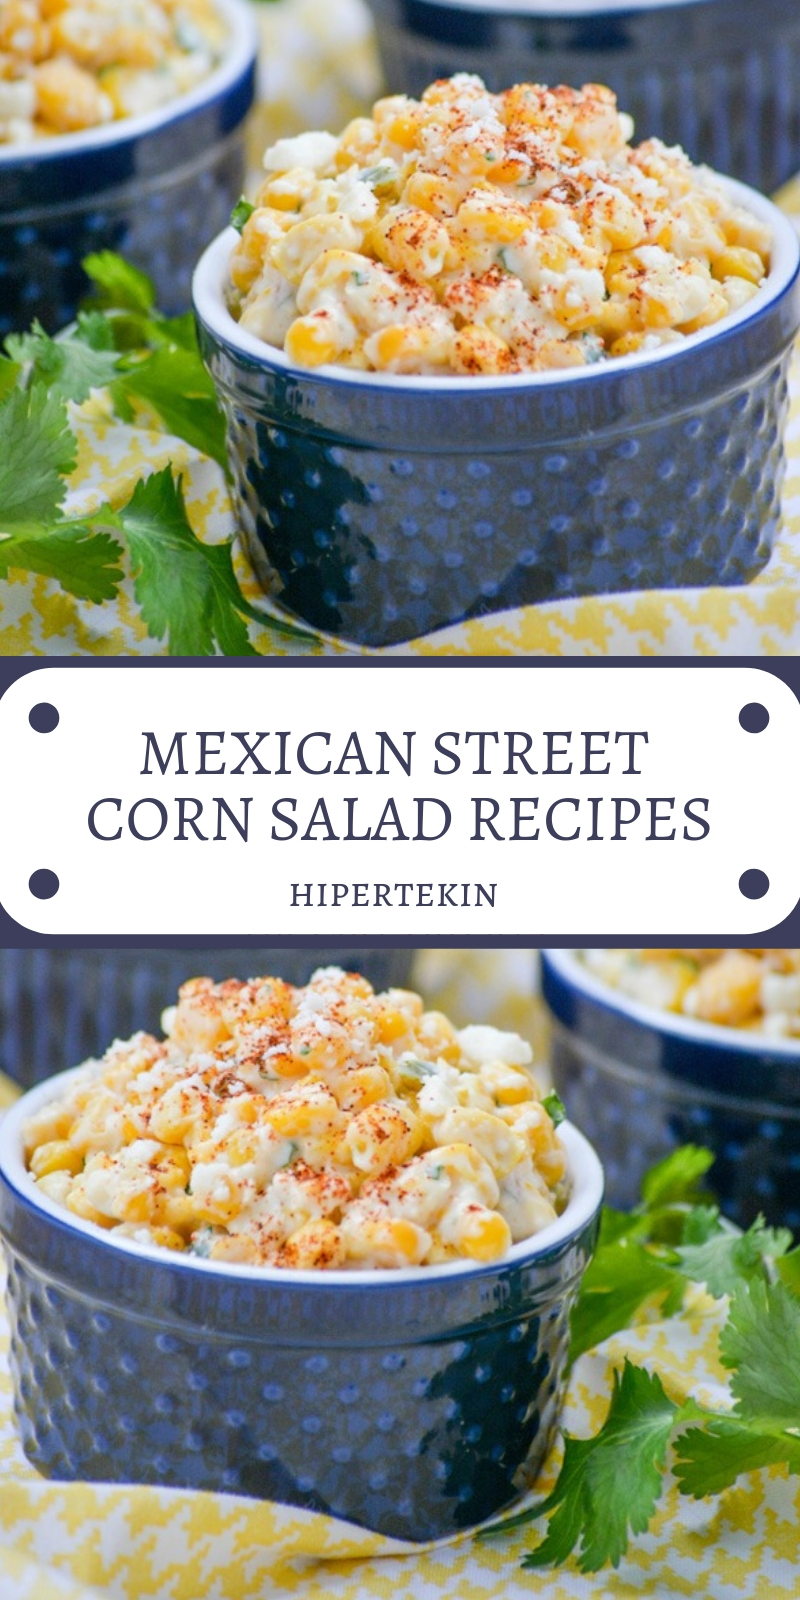 MEXICAN STREET CORN SALAD RECIPES